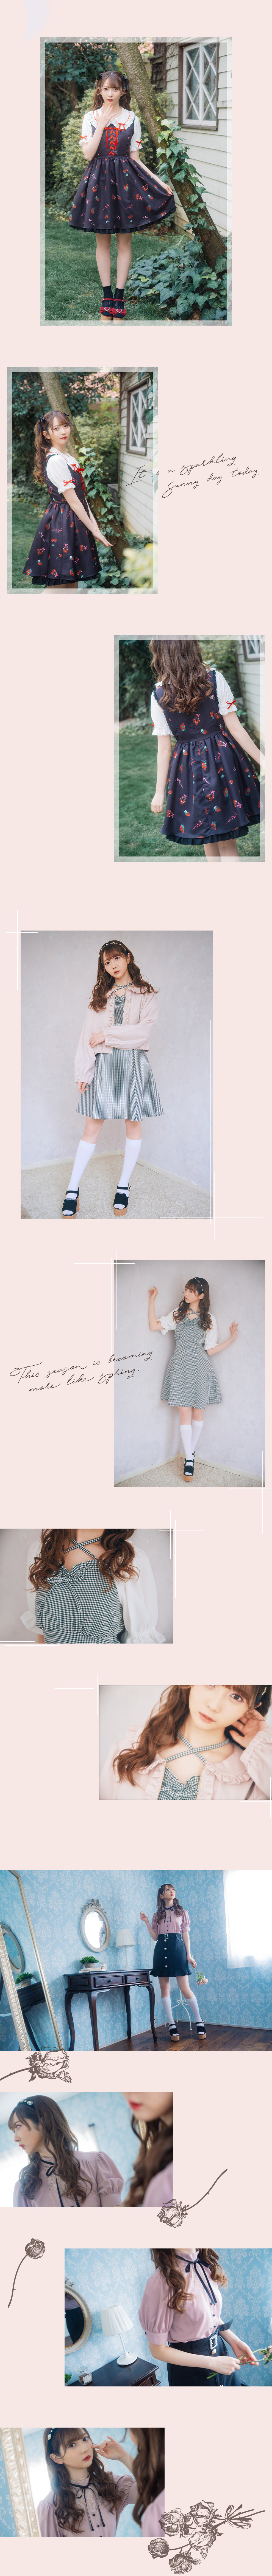 2021 Girly Spring Collection vol.4